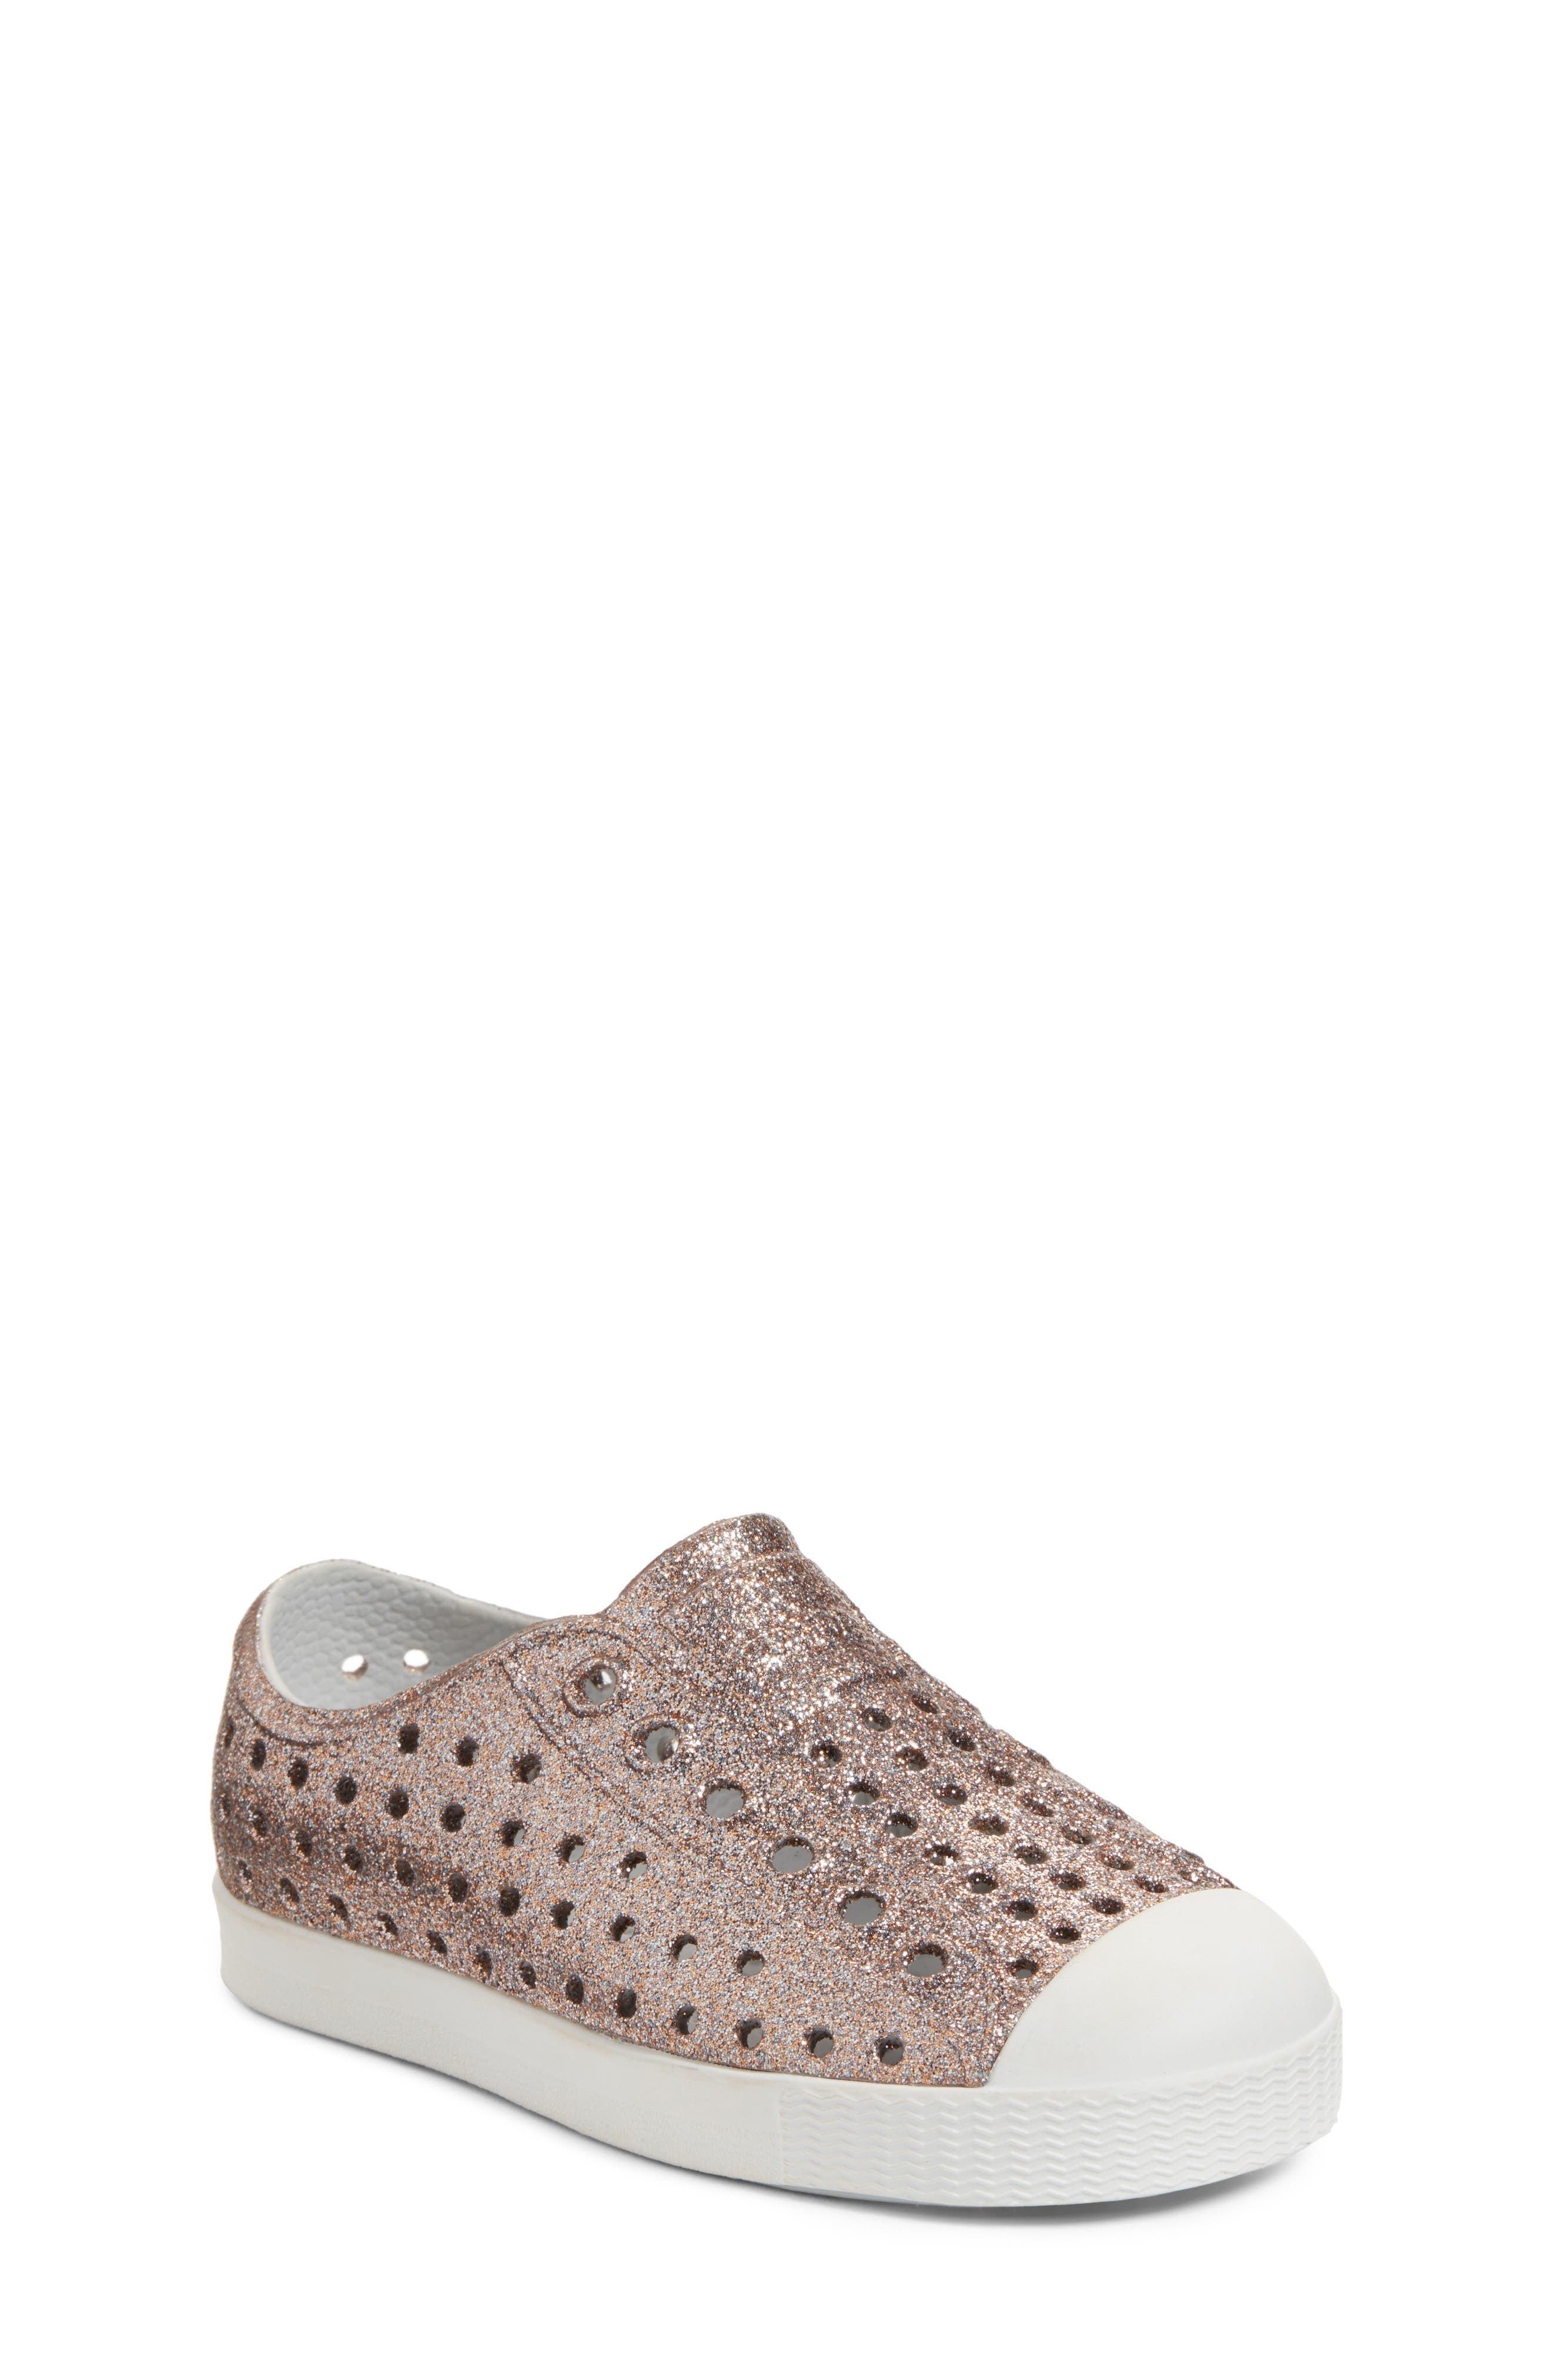 Jefferson - Bling Glitter Slip-On Sneaker,                         Main,                         color, Metallic Bling/ Shell White